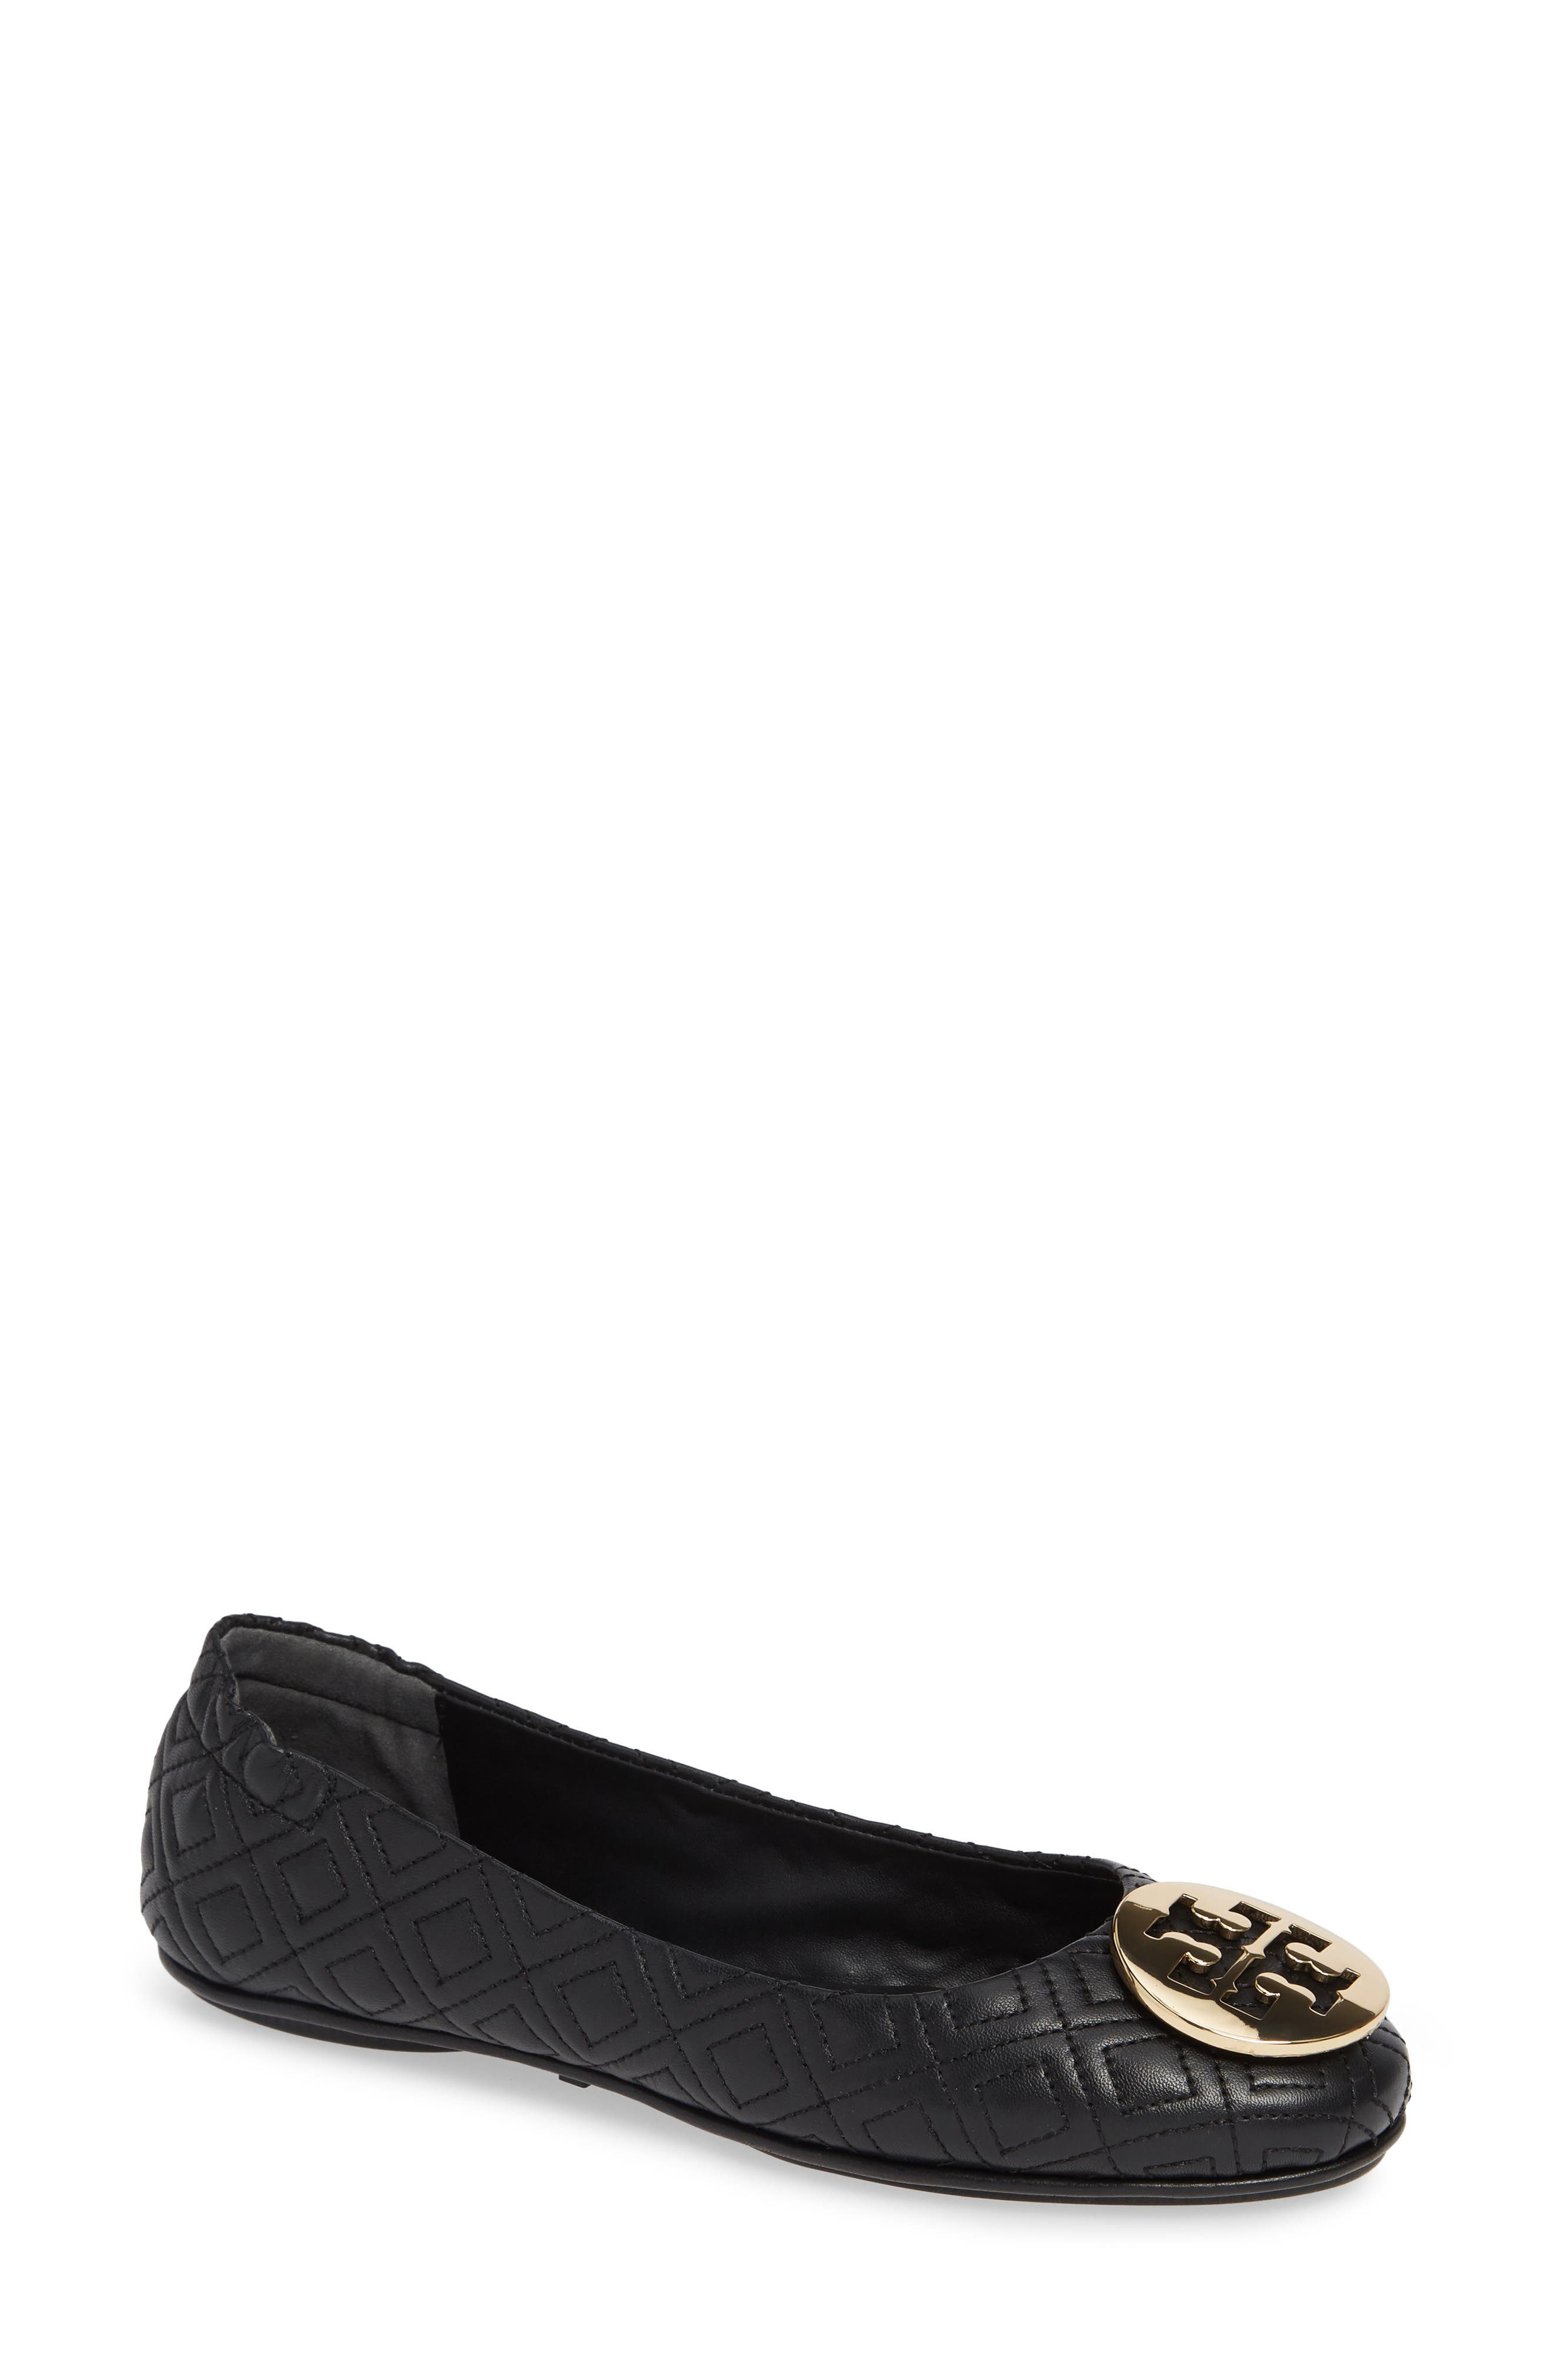 Tory Burch Quilted Minnie Flat, Black